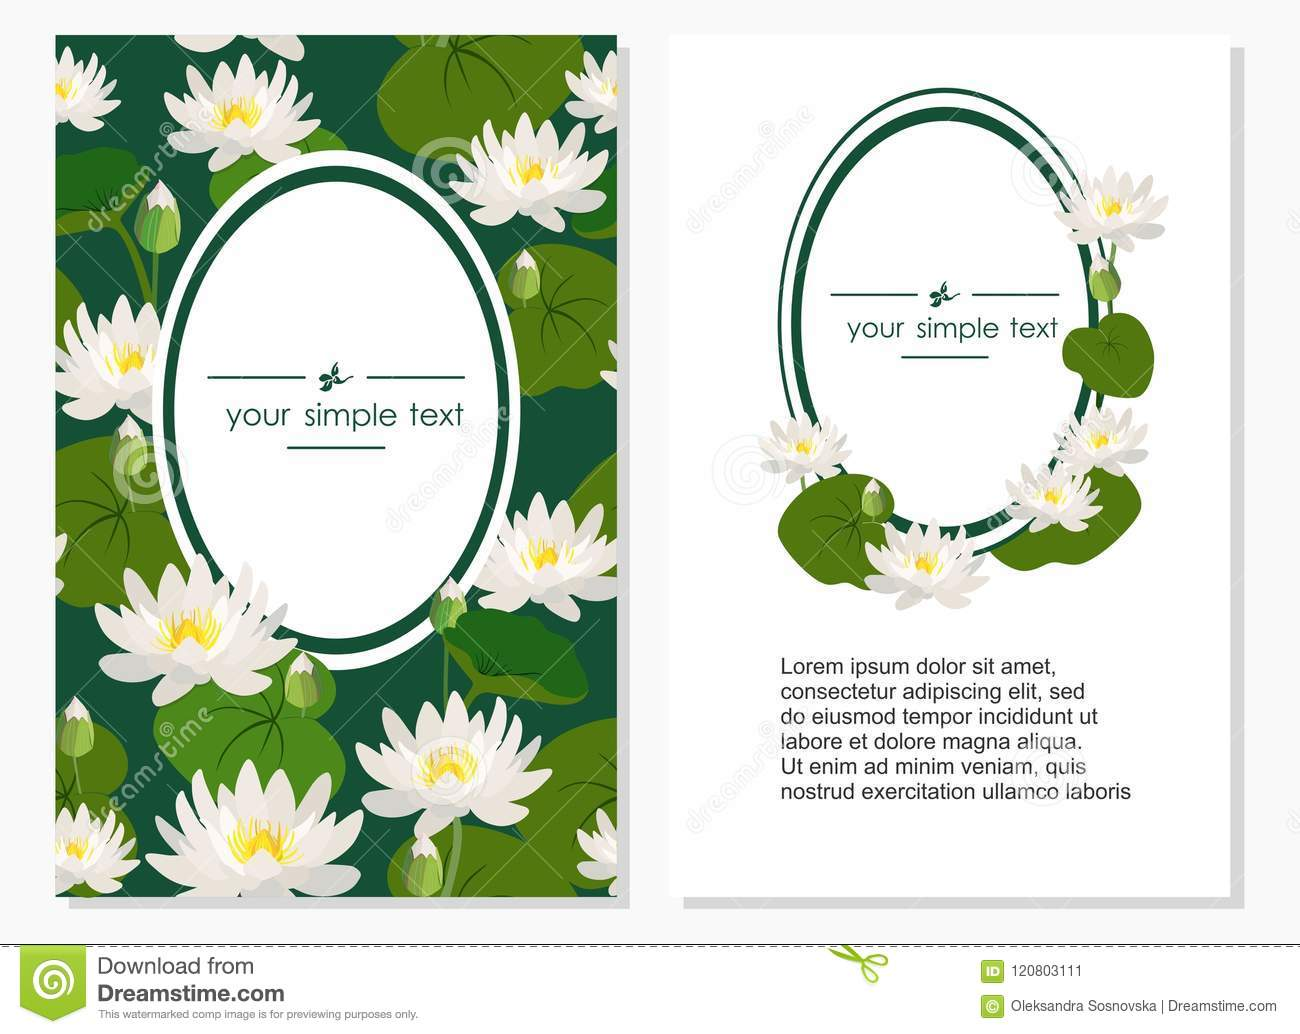 Design Of Banners With Flowers And Lotus Leaves Vector Illustration